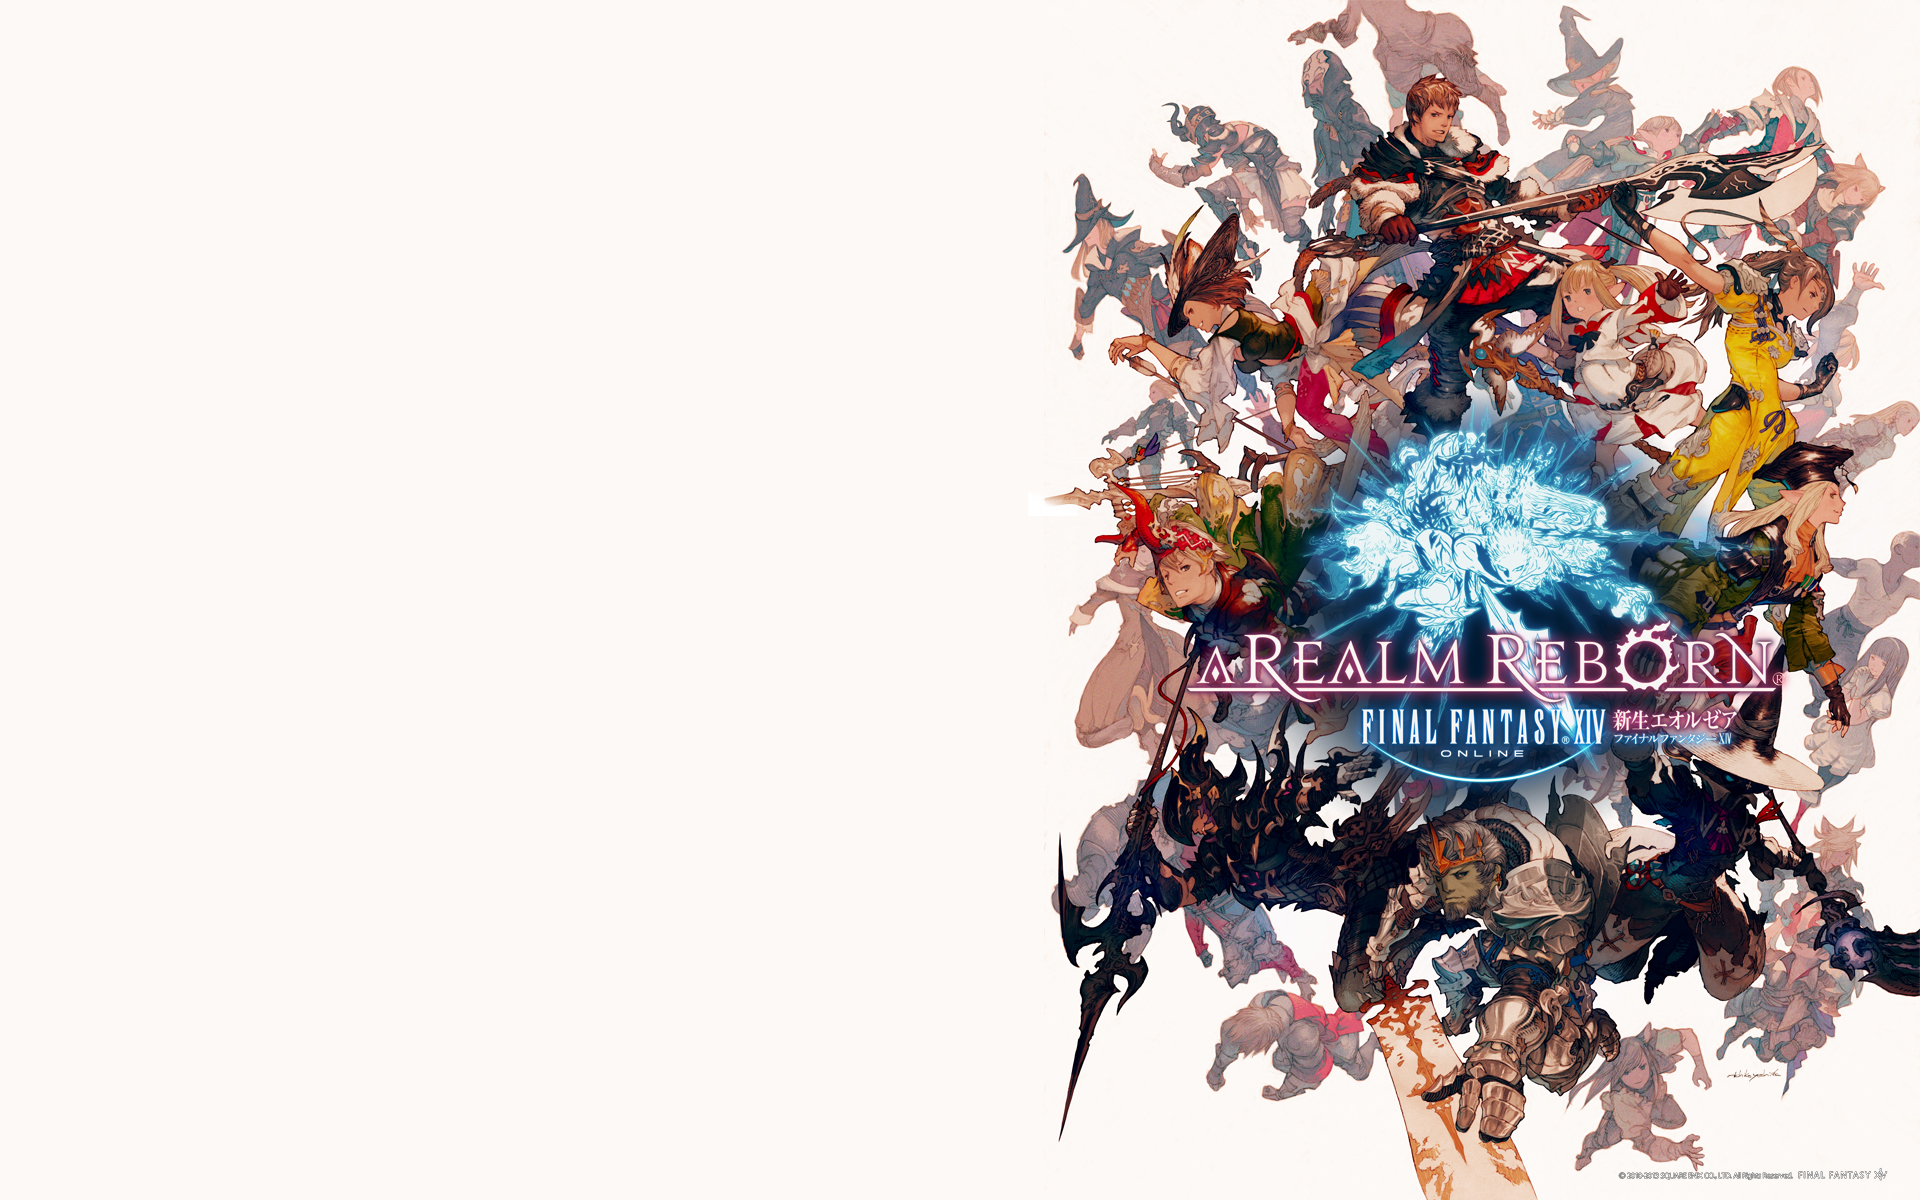 Gamer escape new white mage image revealed in ie10 site - Ffxiv wallpaper 1080p ...